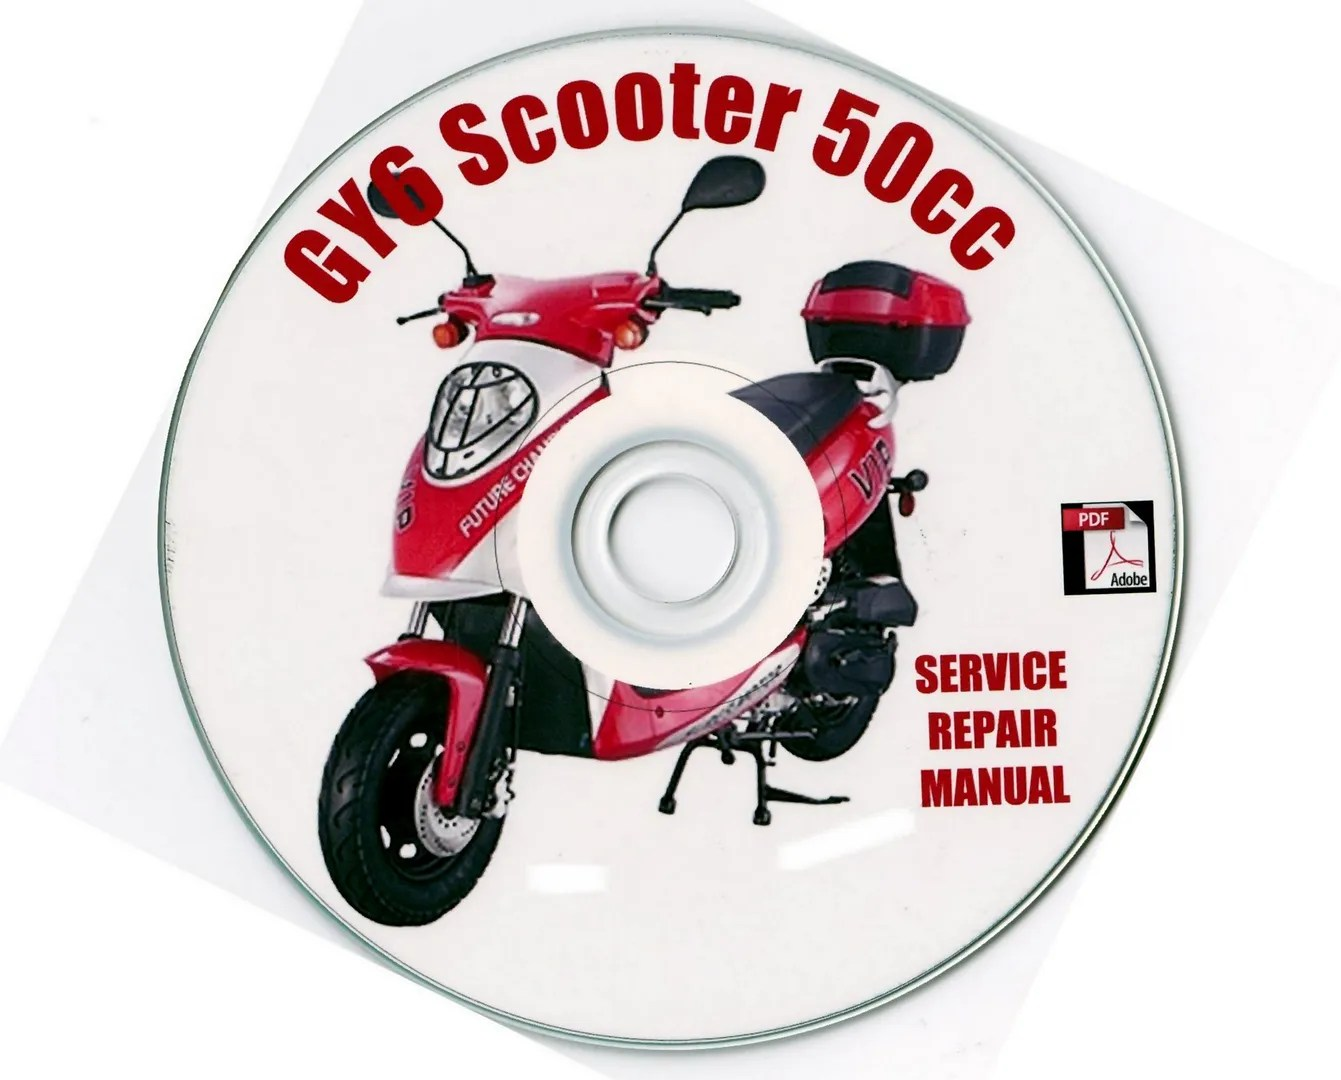 hight resolution of 50cc scooter zpspkf8aiym chinese scooter 50cc gy6 service repair shop manual on cd jianshen dayang 50 cc wiring schematic